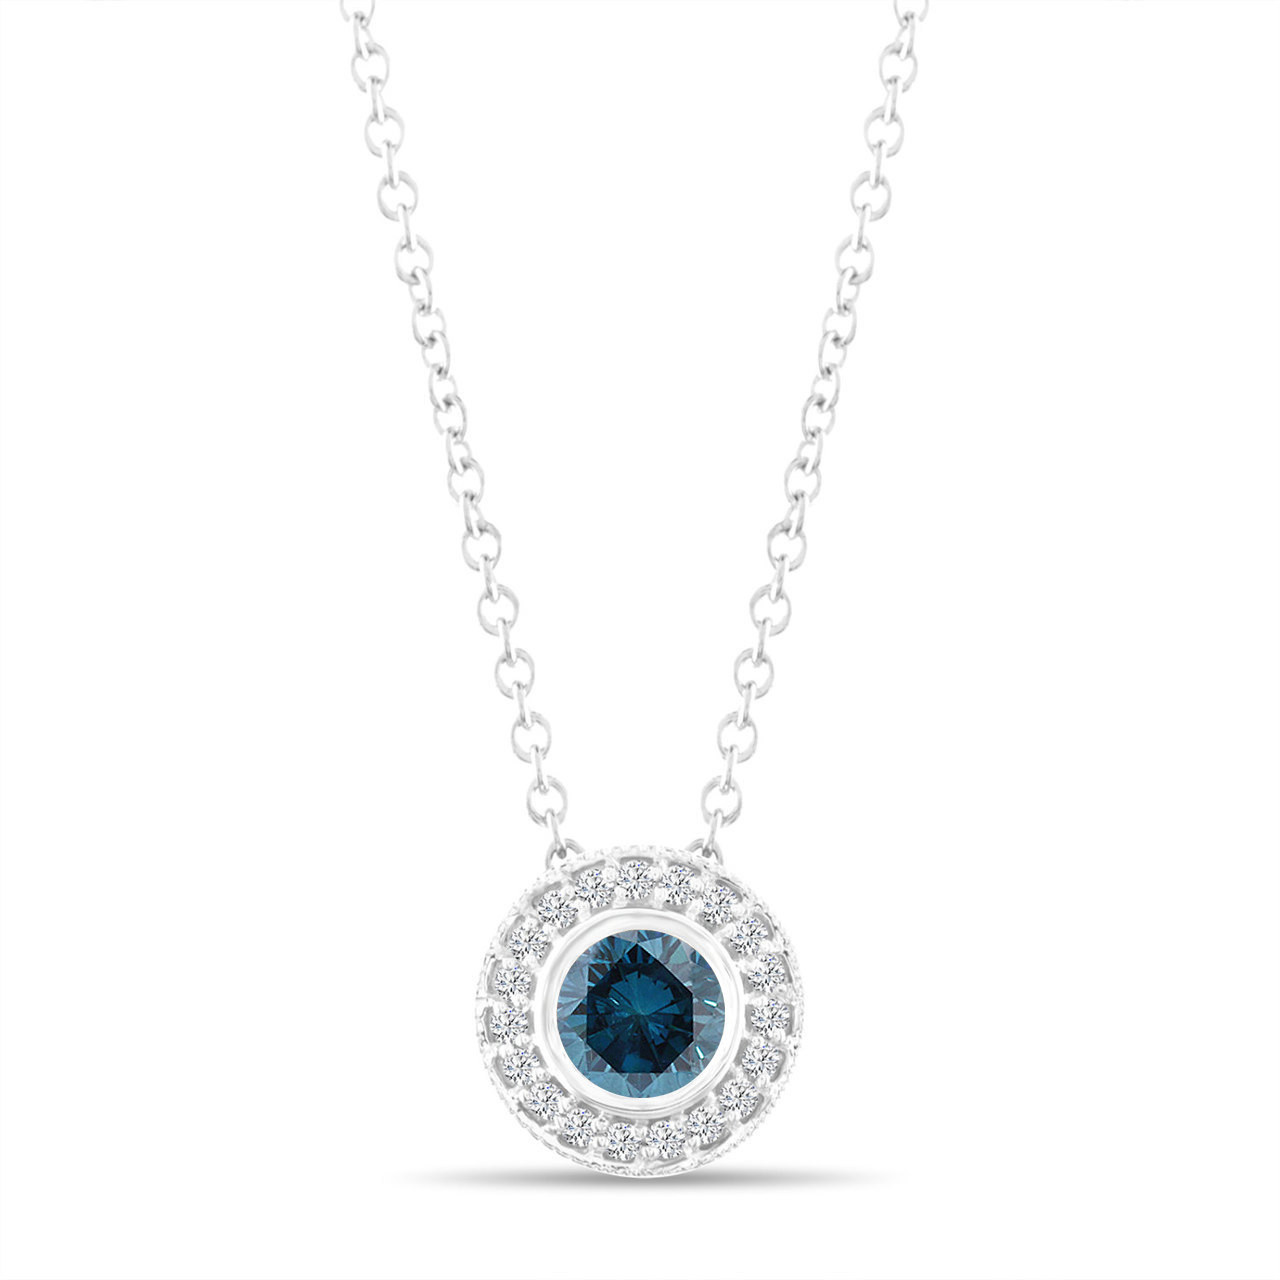 533686133 Fancy Blue Diamond Pendant Necklace 14K White Gold 0.45 Carat ...